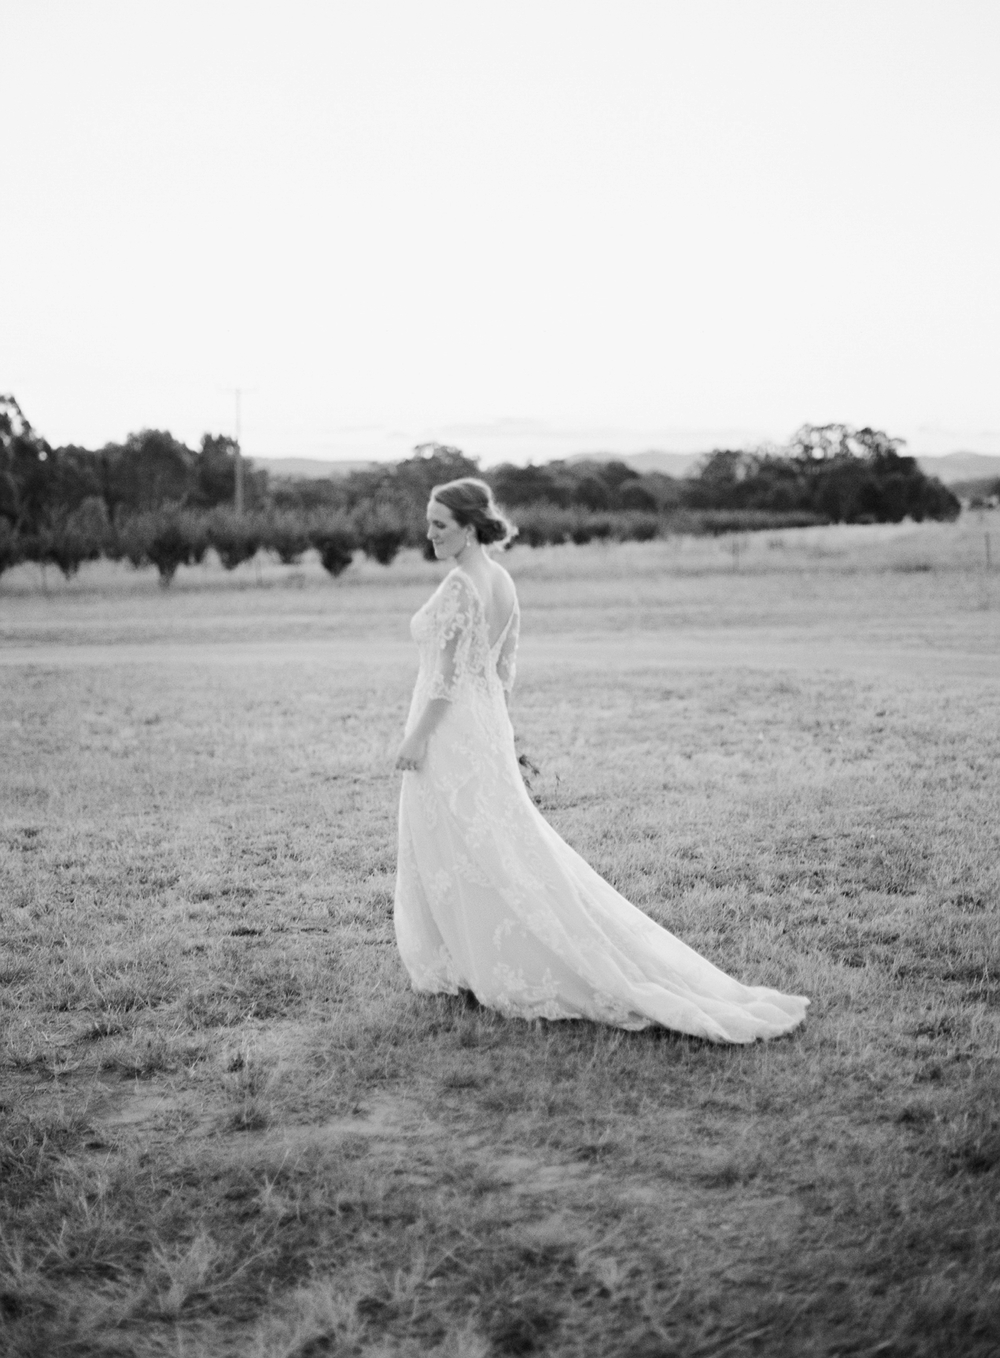 The Vine Grove Mudgee Wedding, Photography by Mr Edwards_1832.jpg